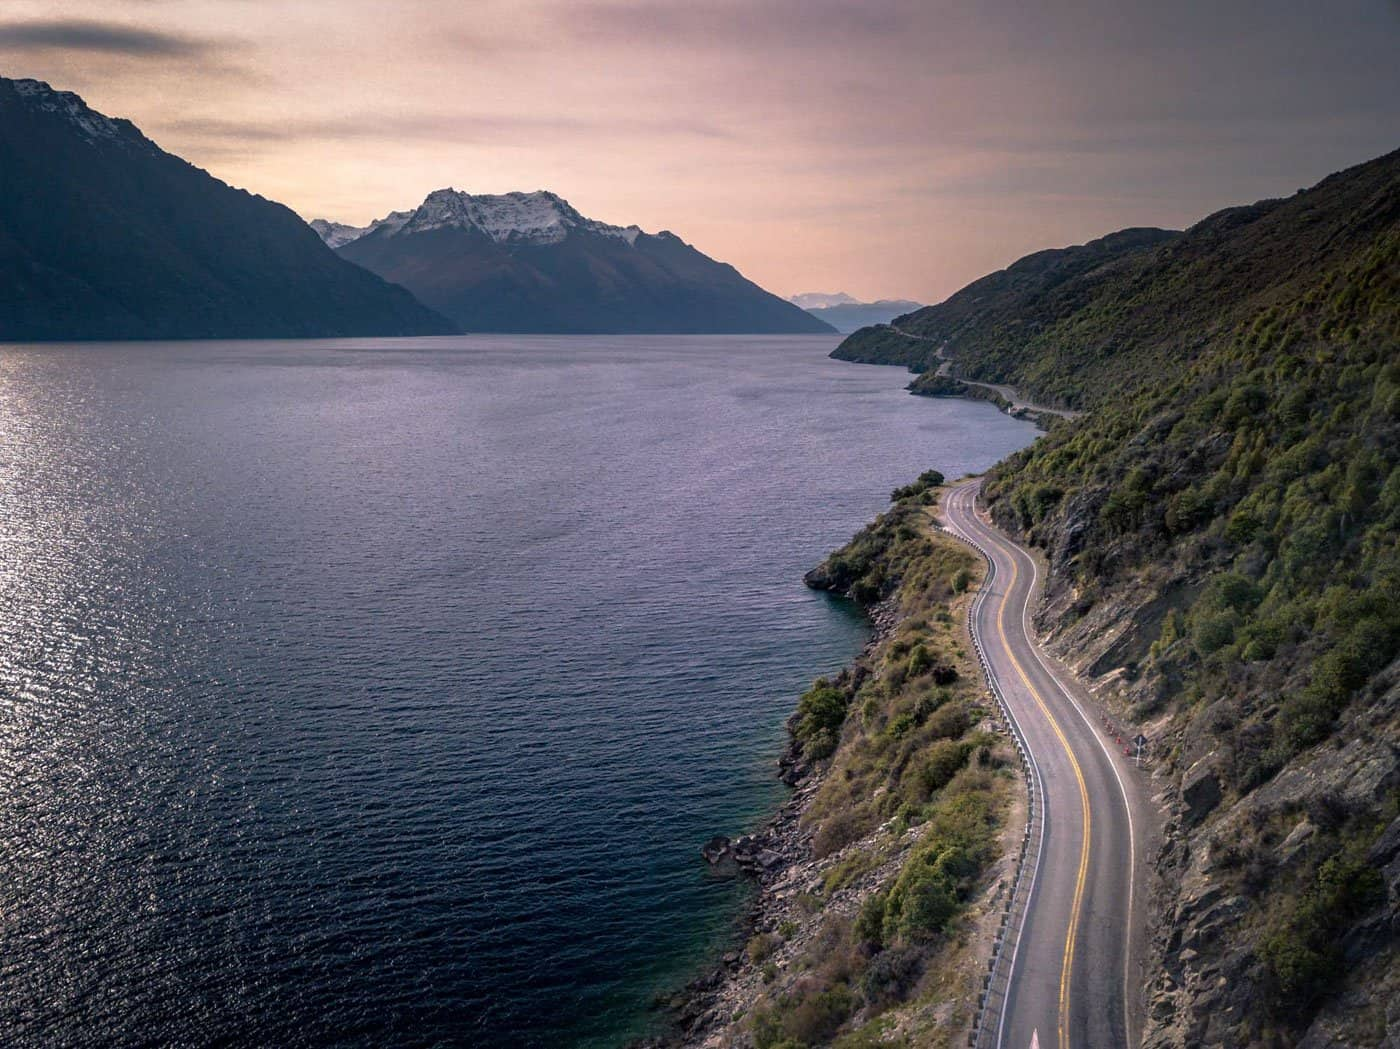 The Devil's Staircase is a beautiful stretch of road that begins your journey from Queenstown to Milford Sound.